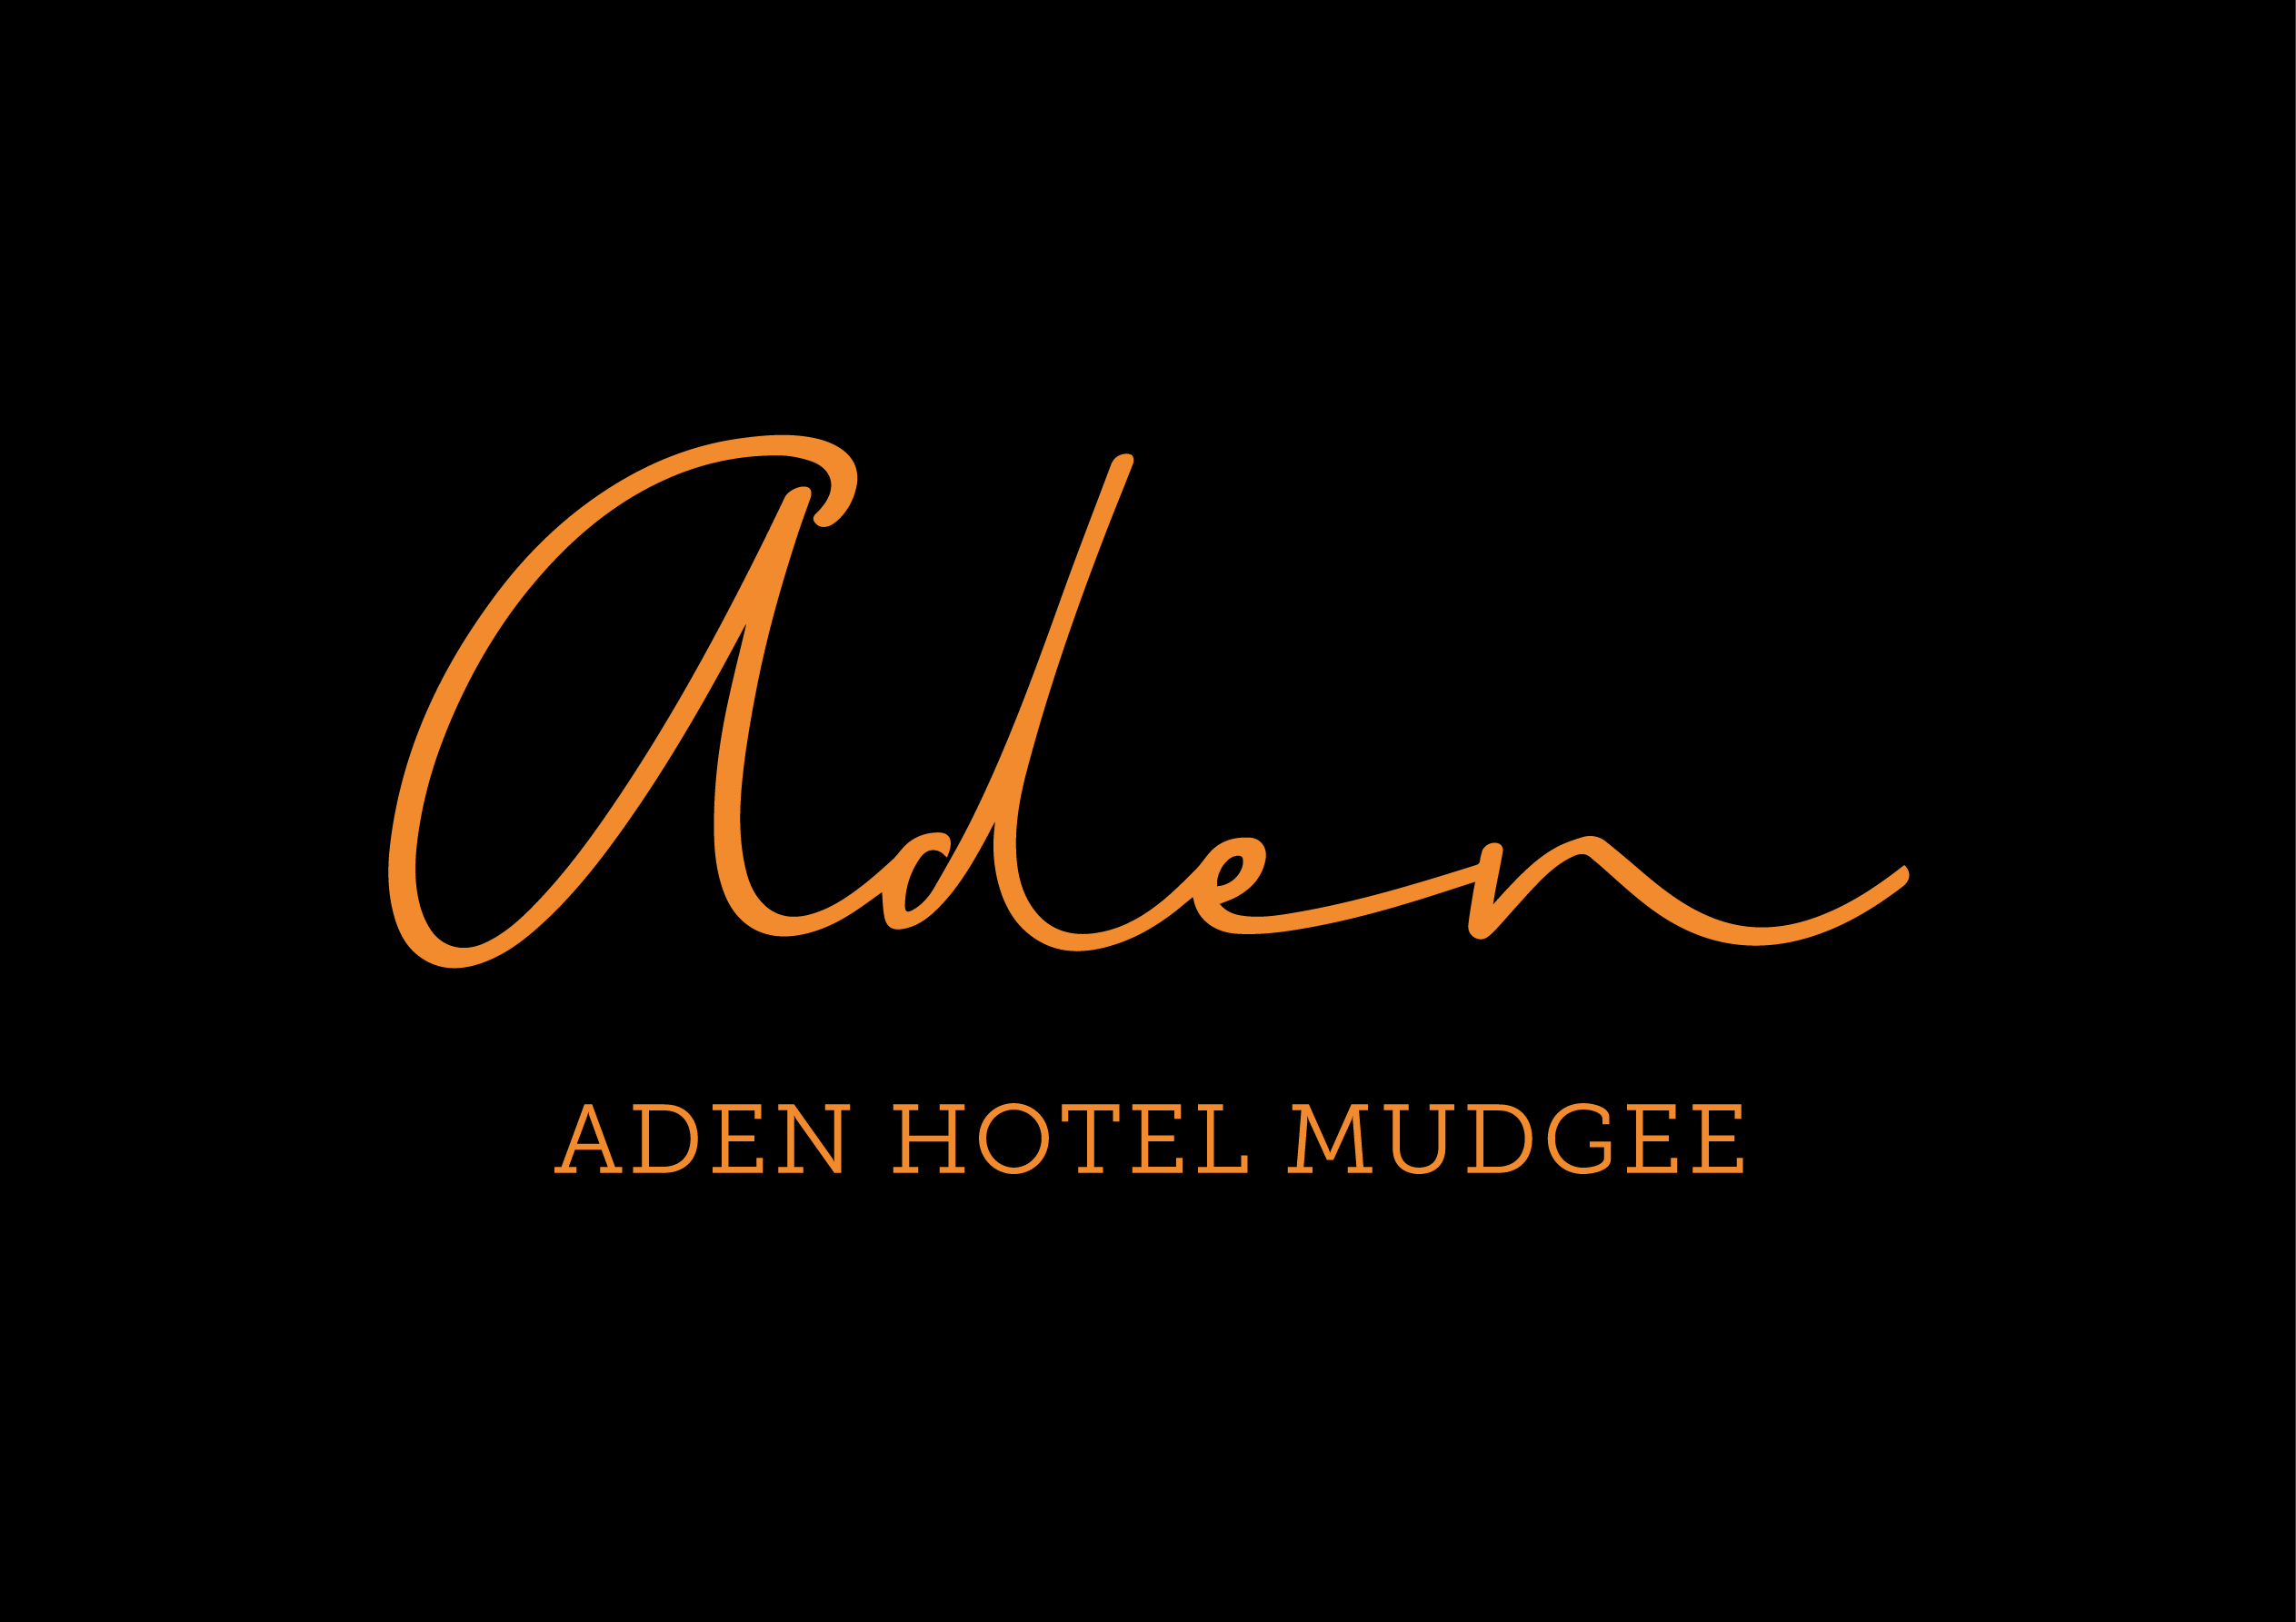 Comfort Inn Aden Hotel Mudgee - Accommodation in Surfers Paradise